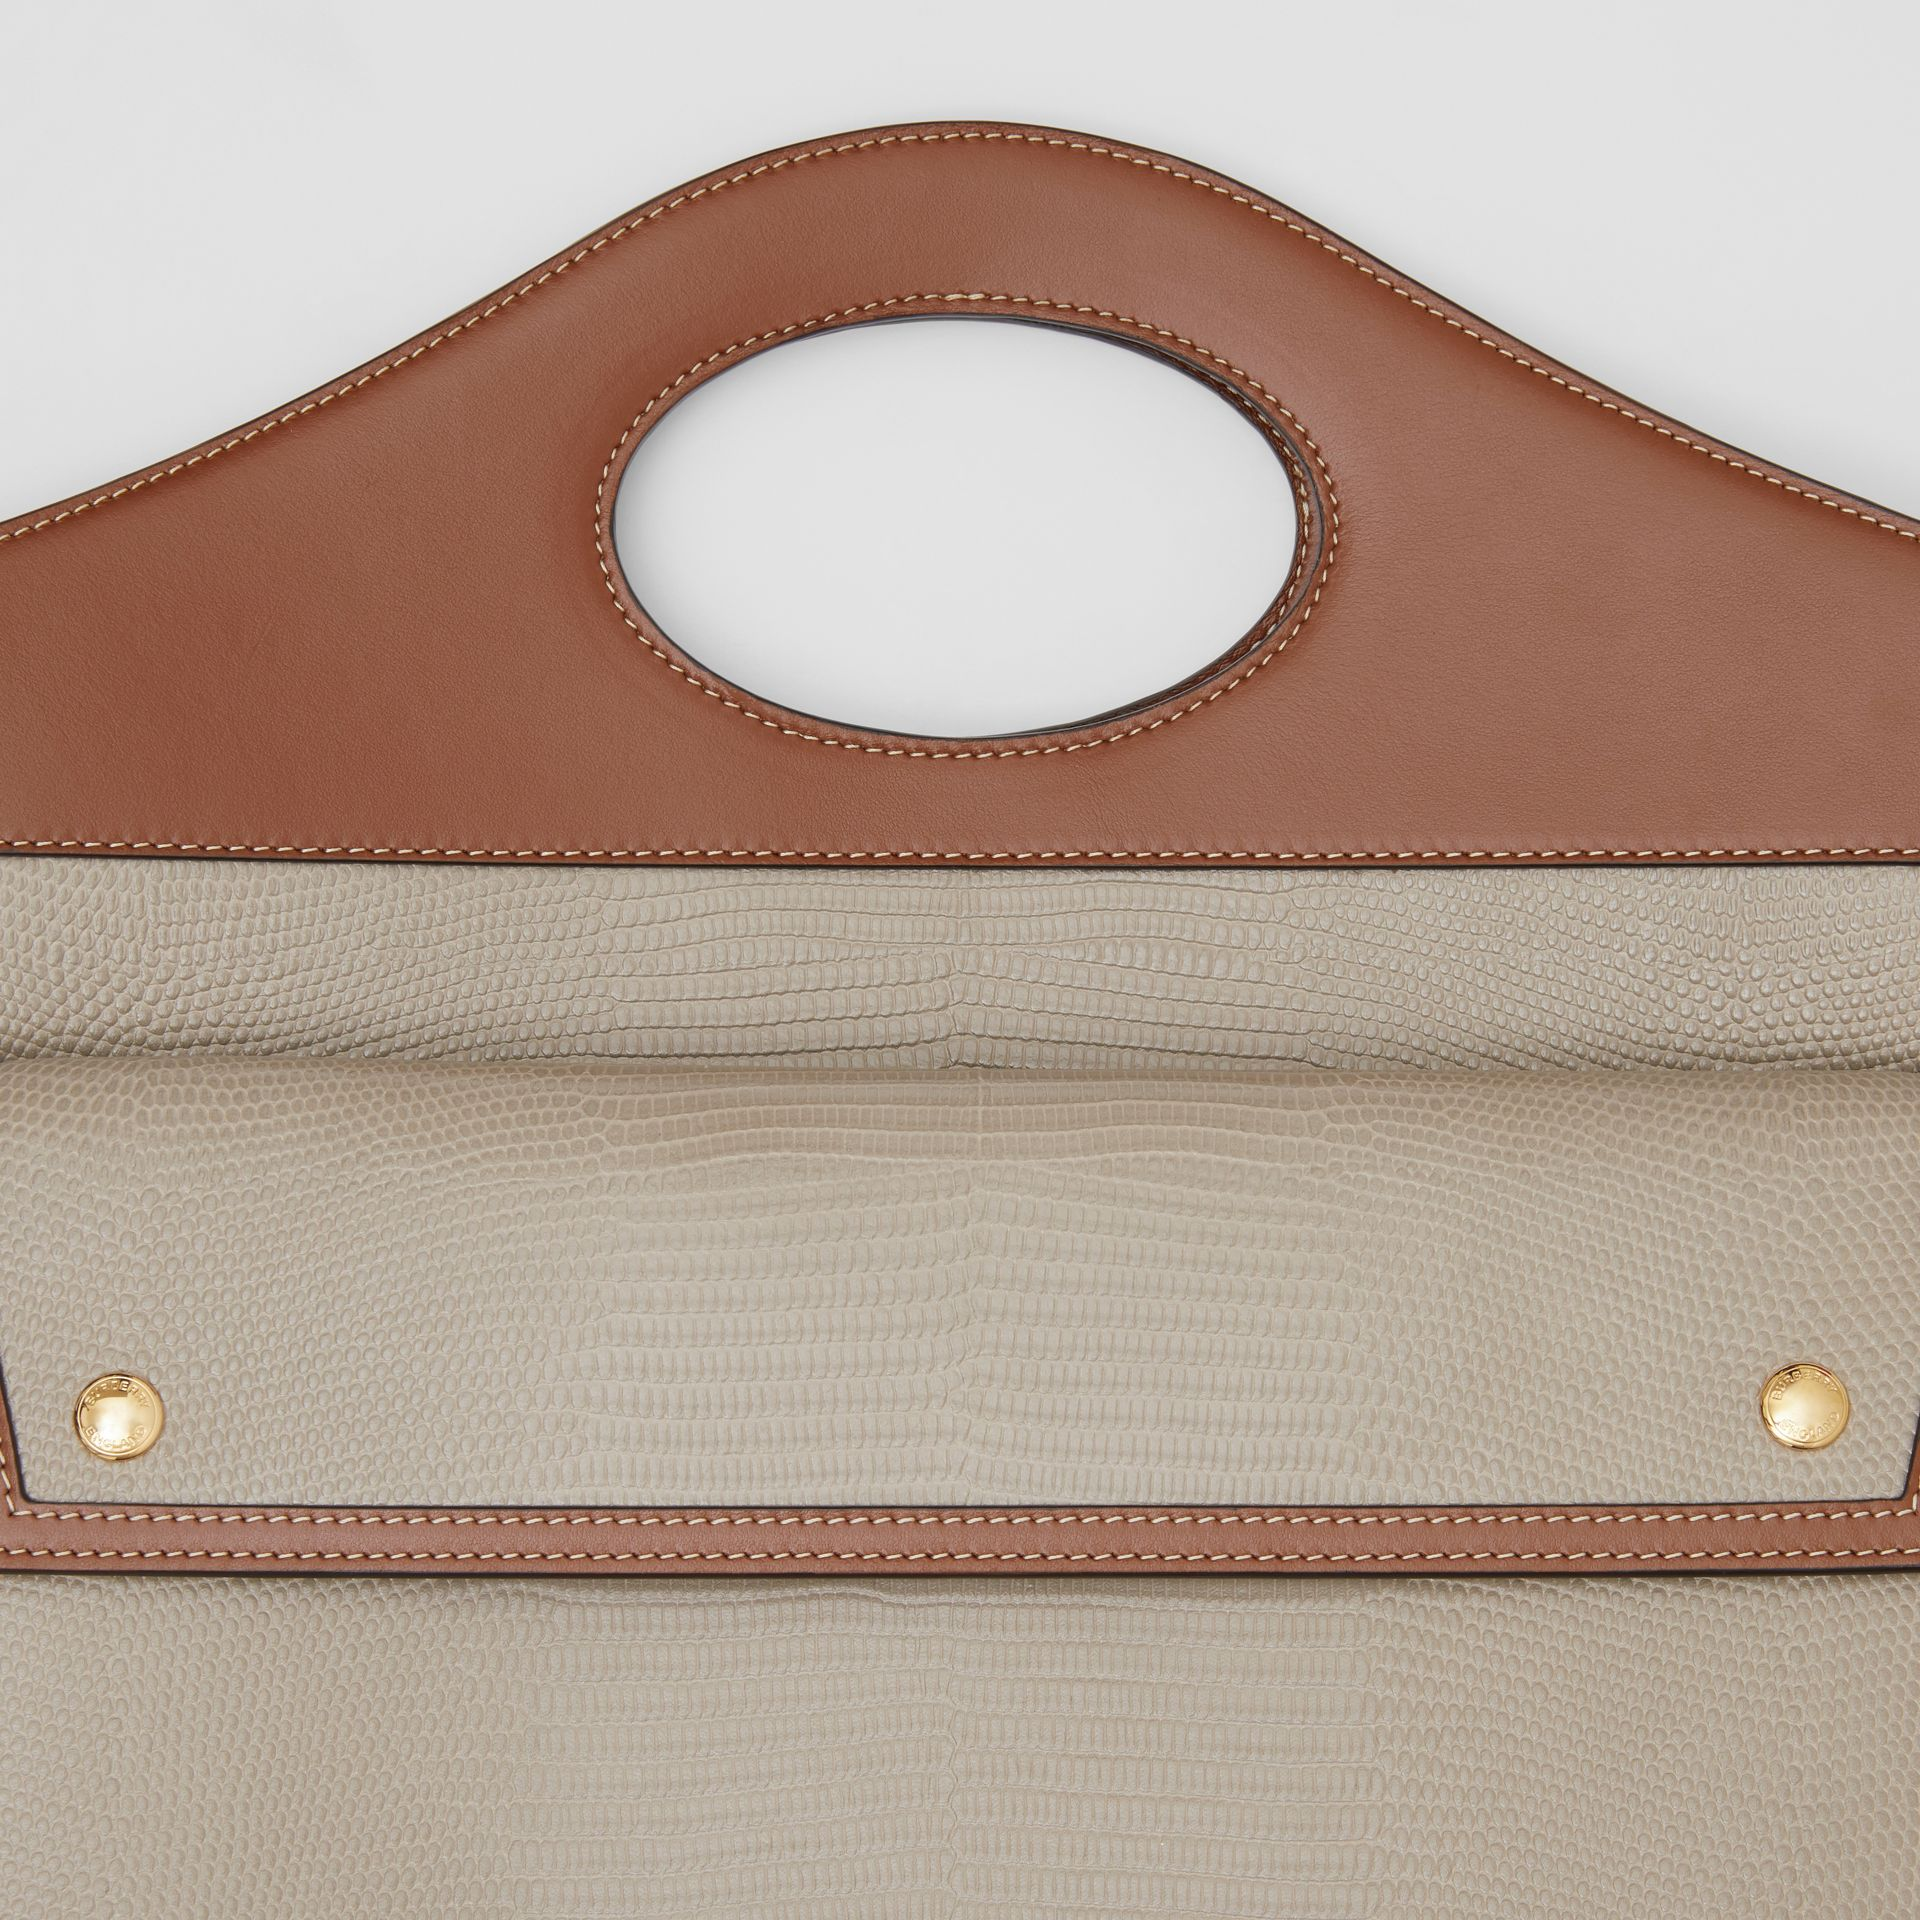 Medium Embossed Deerskin and Leather Pocket Bag in Tan - Women | Burberry - gallery image 1